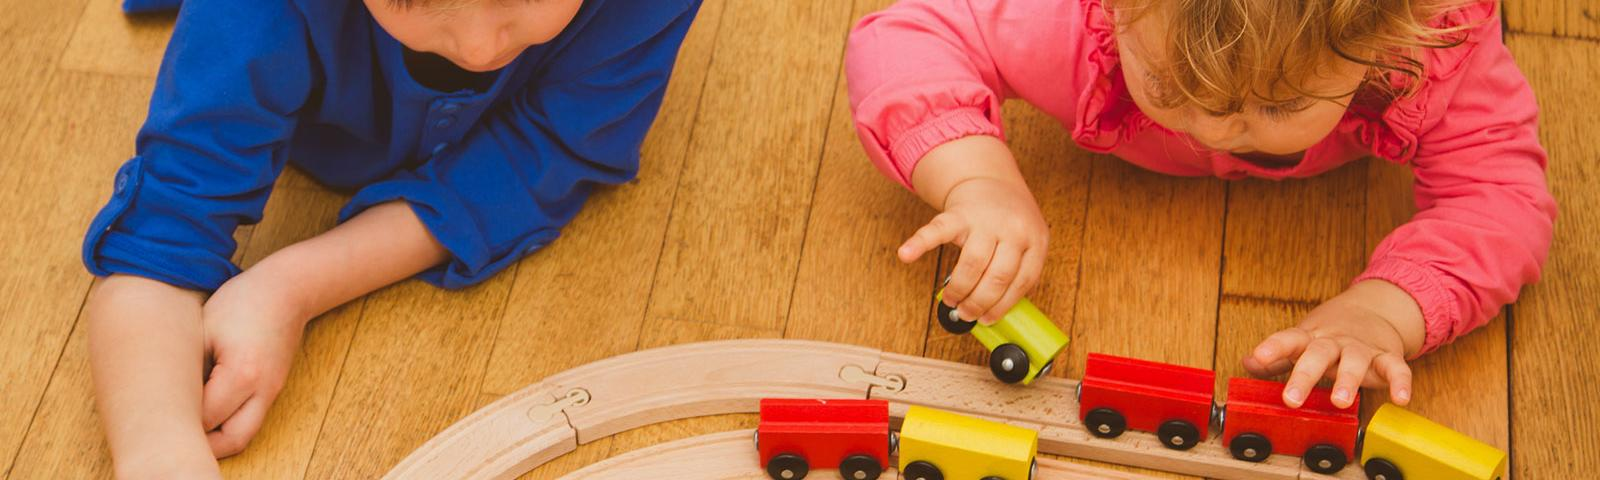 two preschool age children lying on wood floor, playing with toy trains